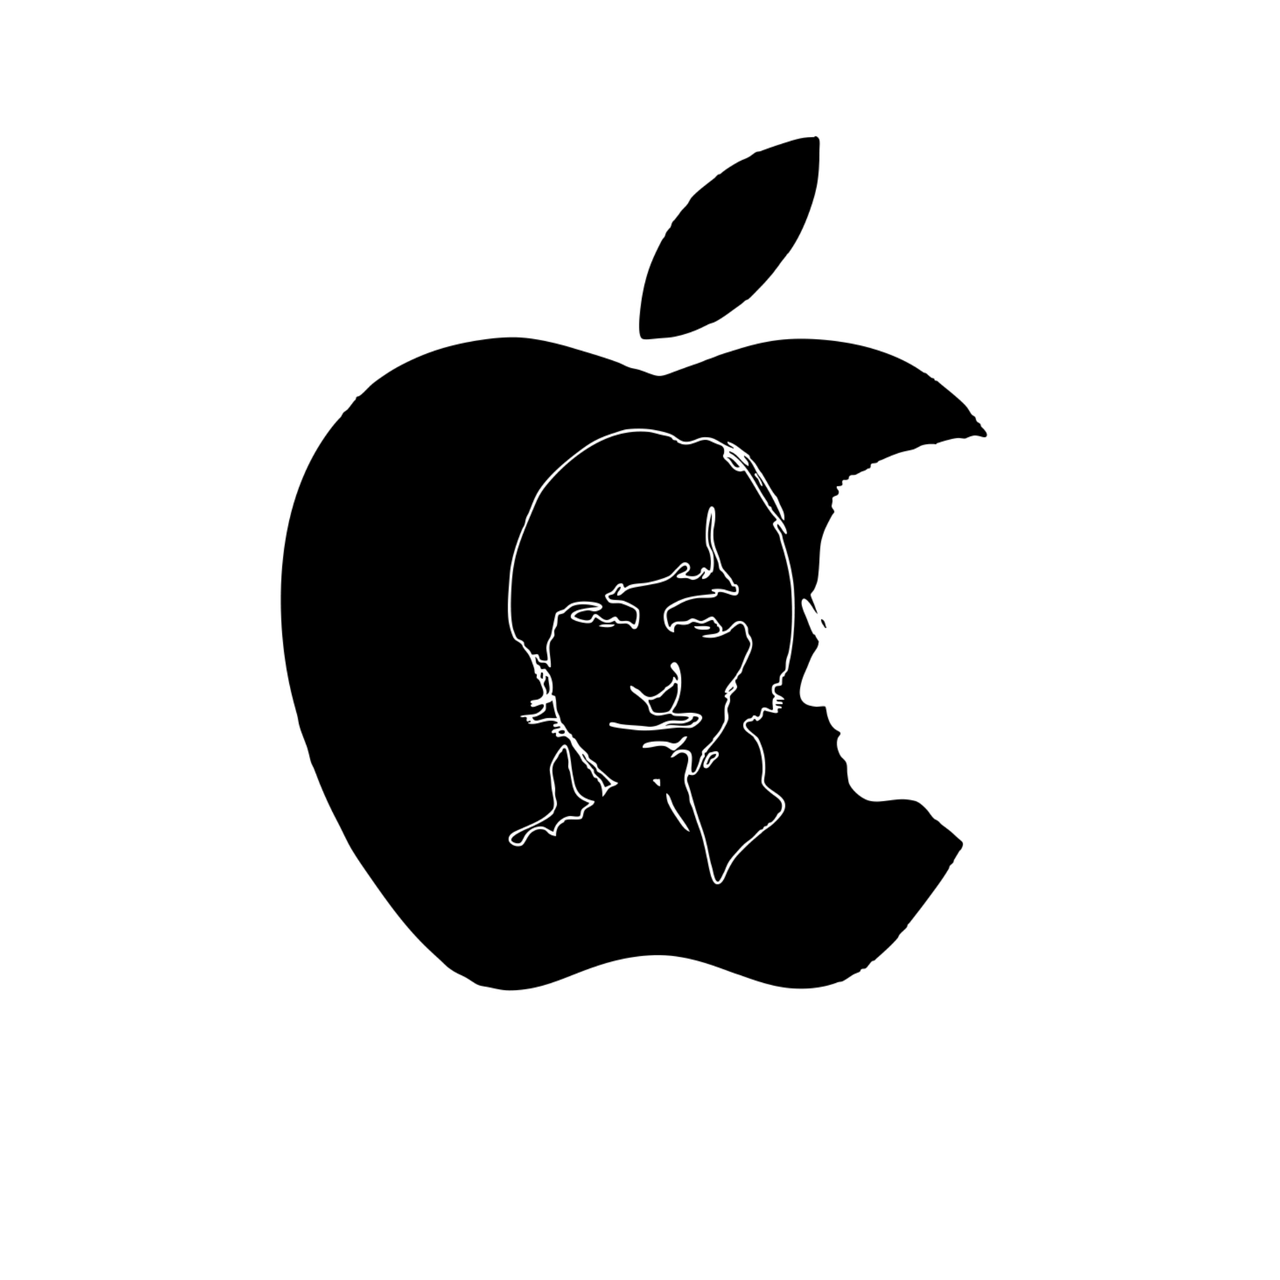 apple, logo, steve jobs